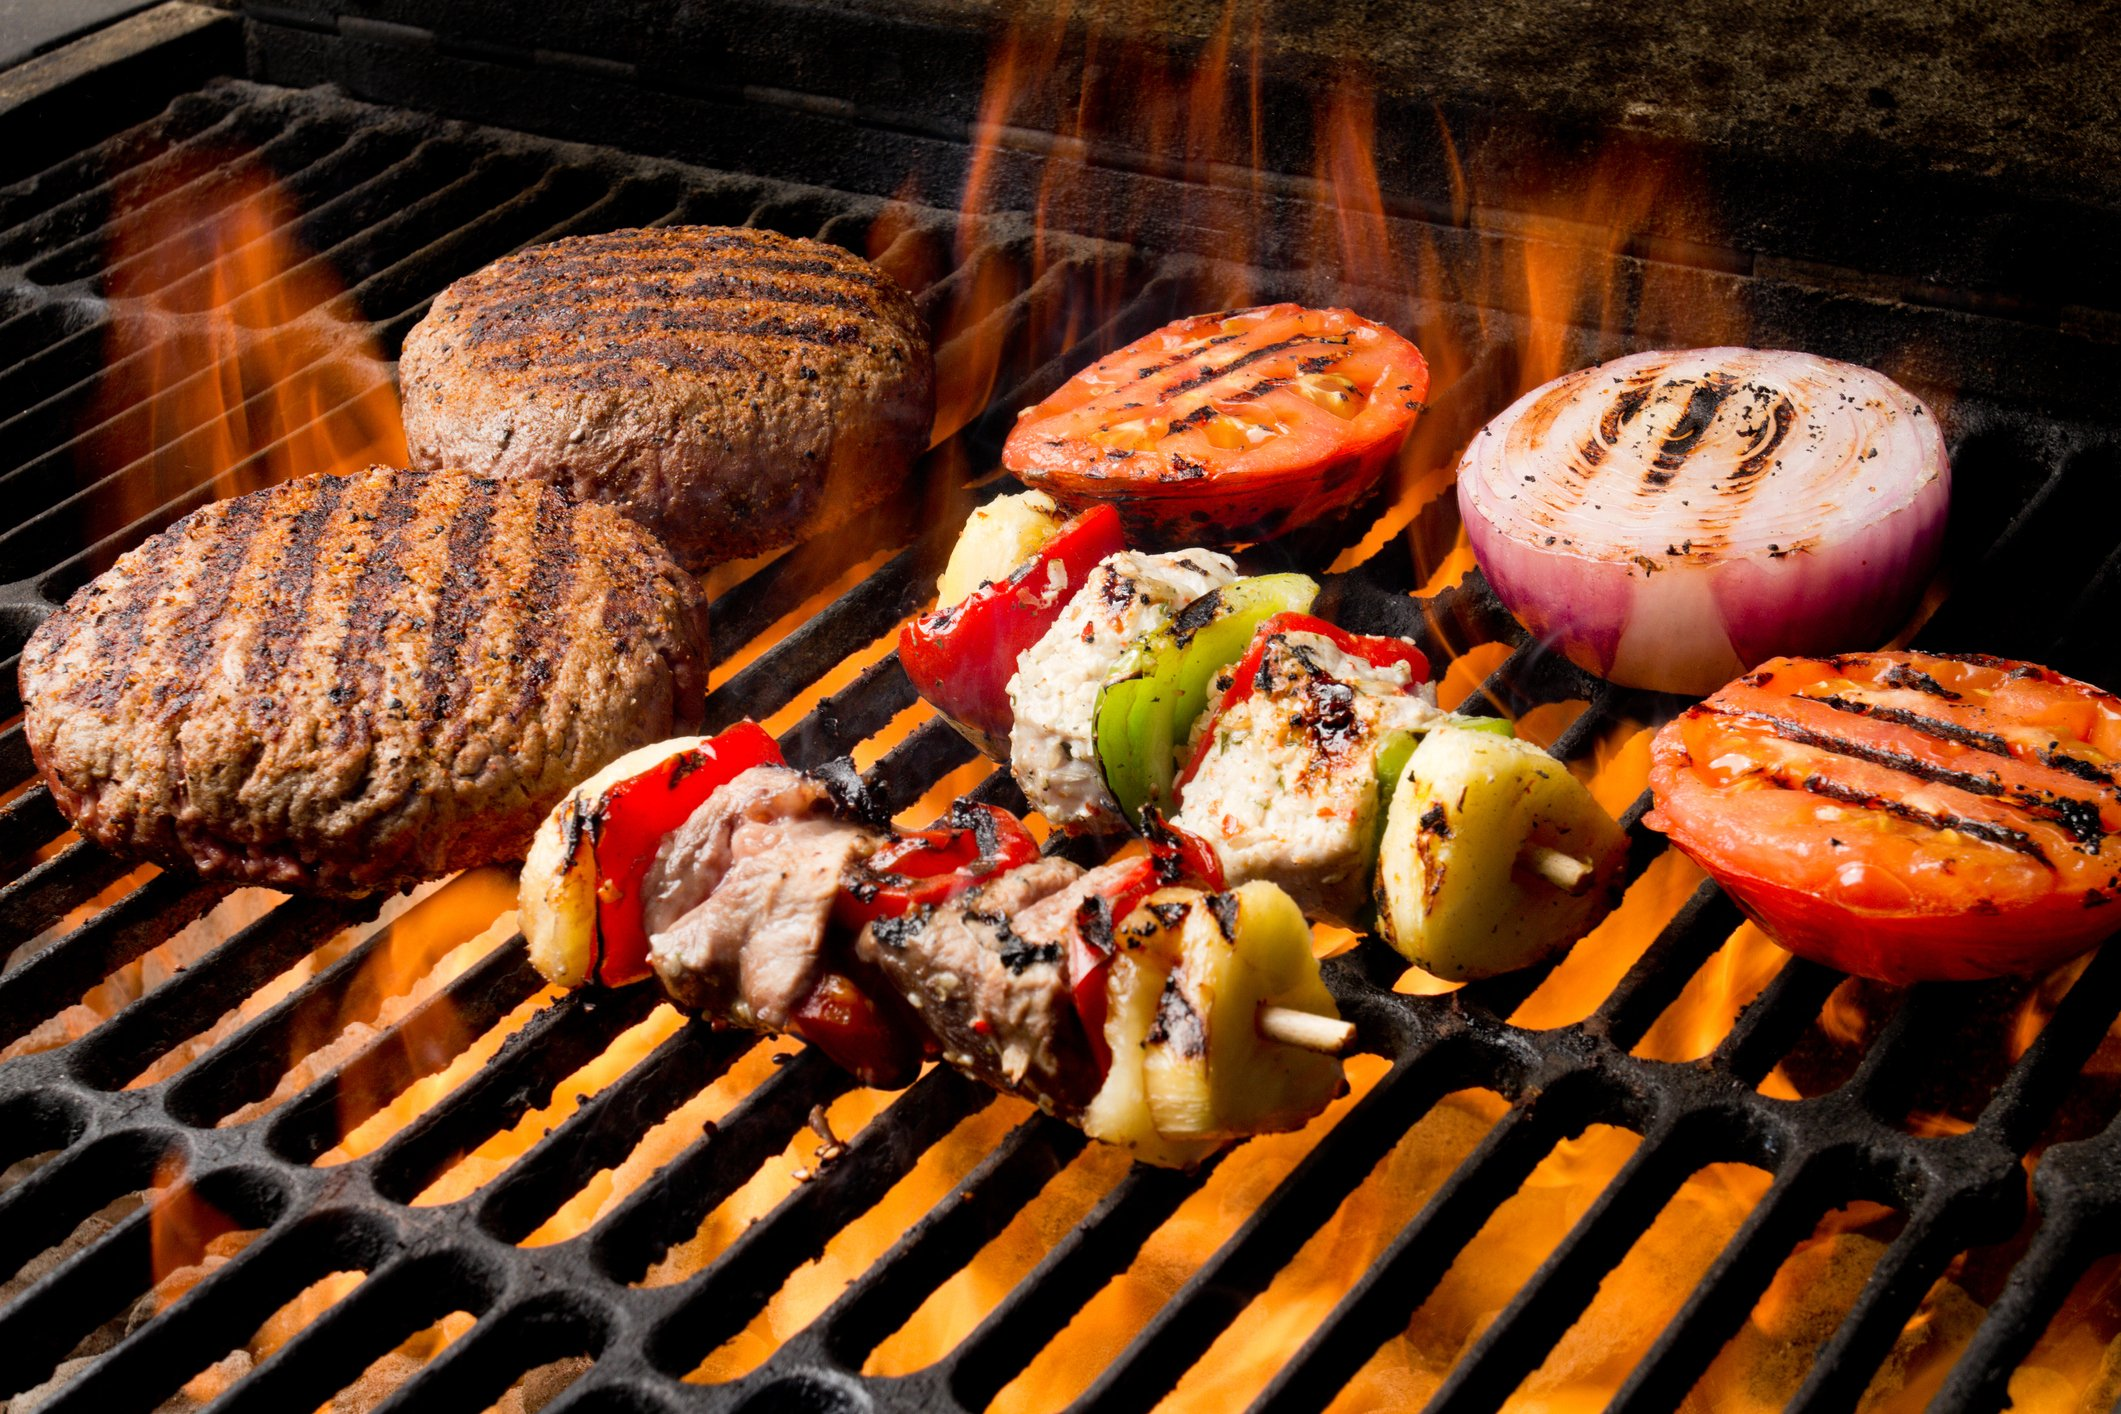 Chicken Shish Kebabs with bell pepper and grilled chicken breast and beef Grilled Burger, Tomato, Onion on a flaming old fashioned charcoal barbecue grill with perfect grill marks on everything